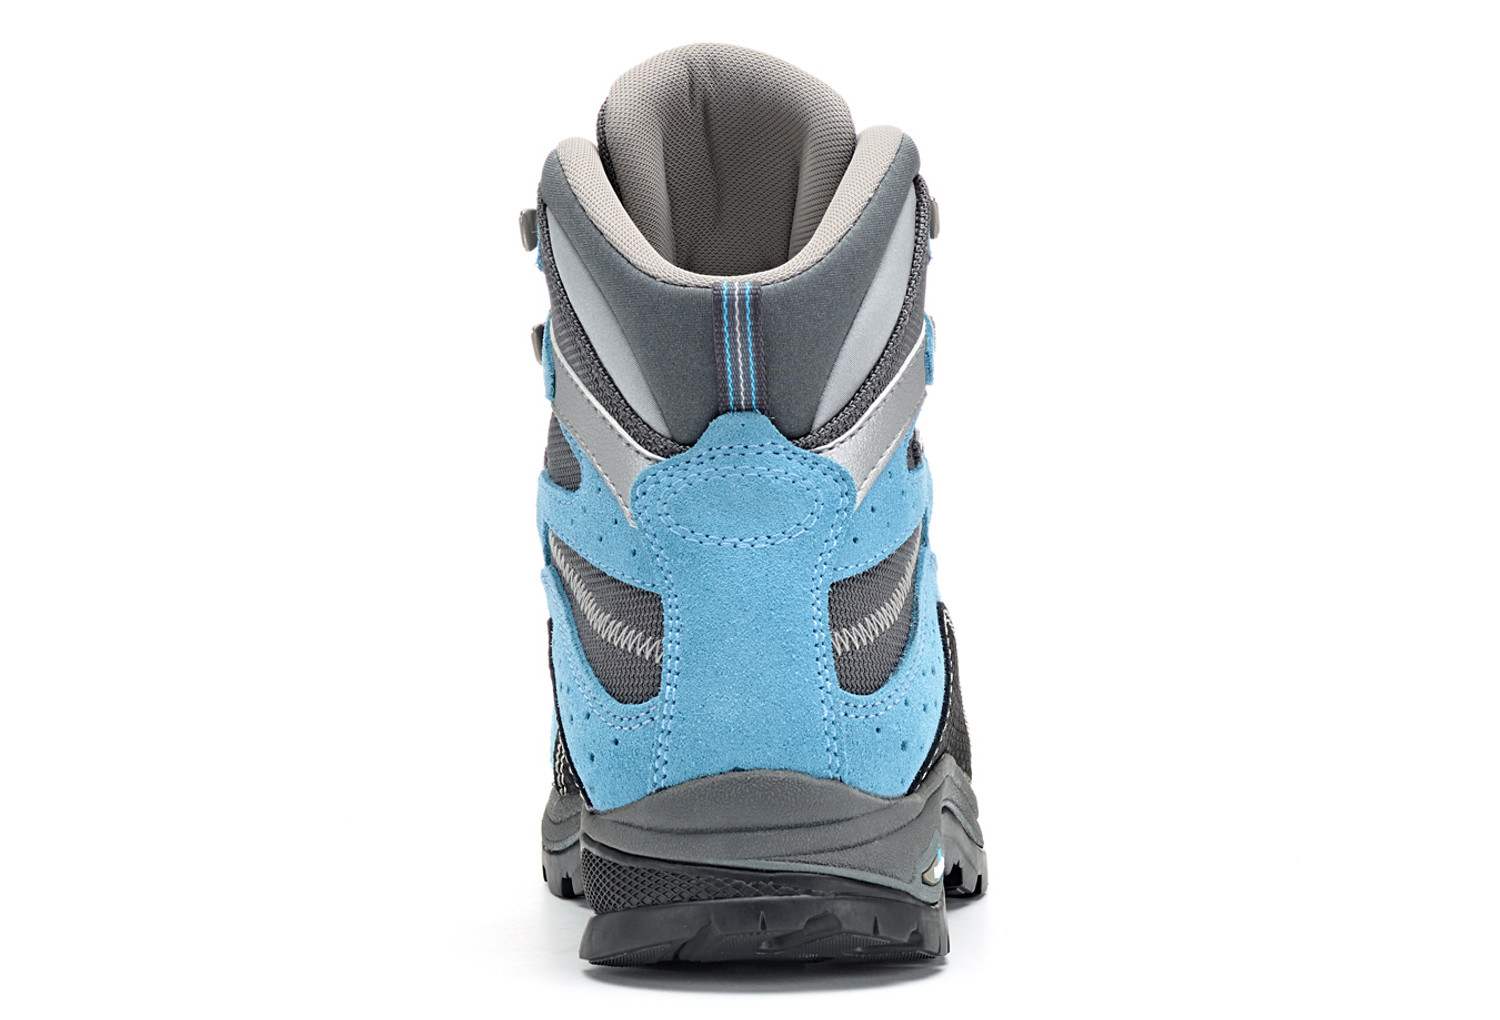 wide range good quality 100% authentic Asolo Drifter GV EVO Women's Hiking Shoes Blue Grey